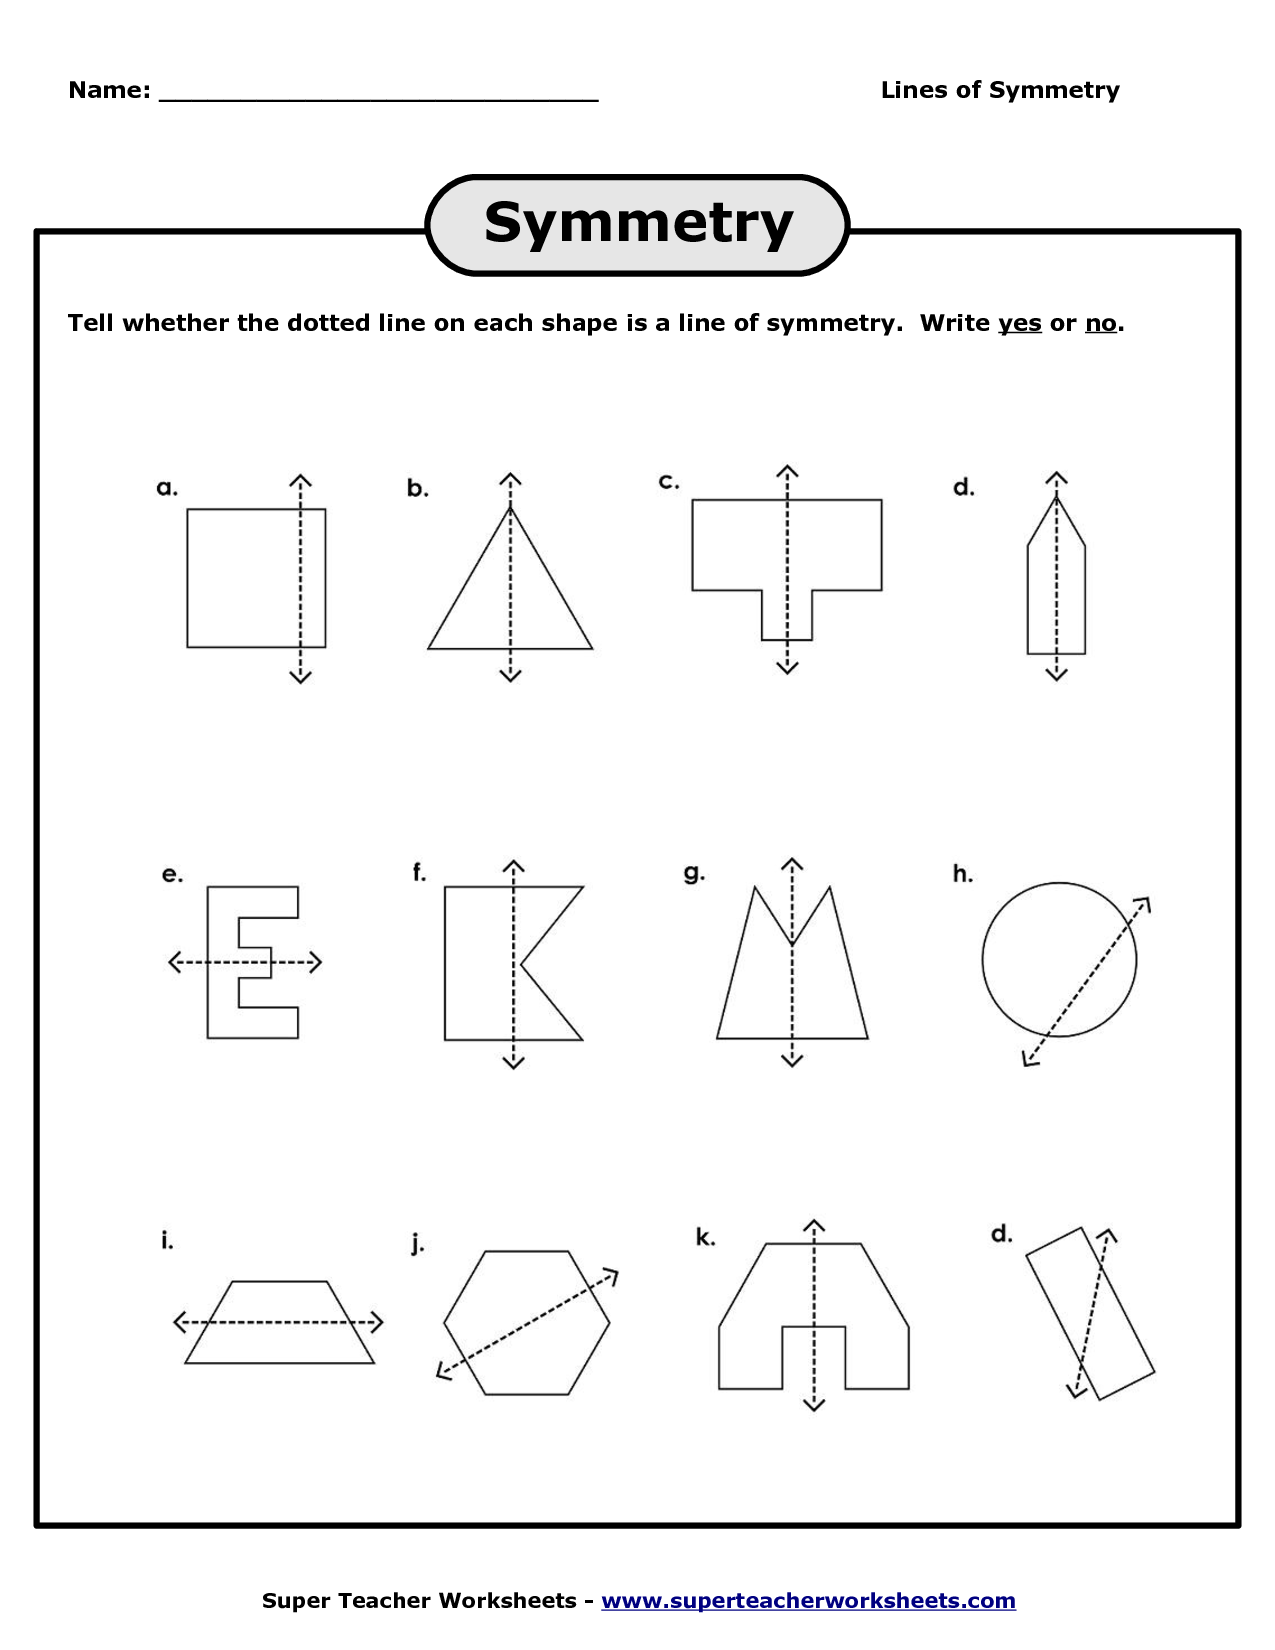 Drawing Lines Of Symmetry Worksheets : Lines of symmetry worksheets worksheet